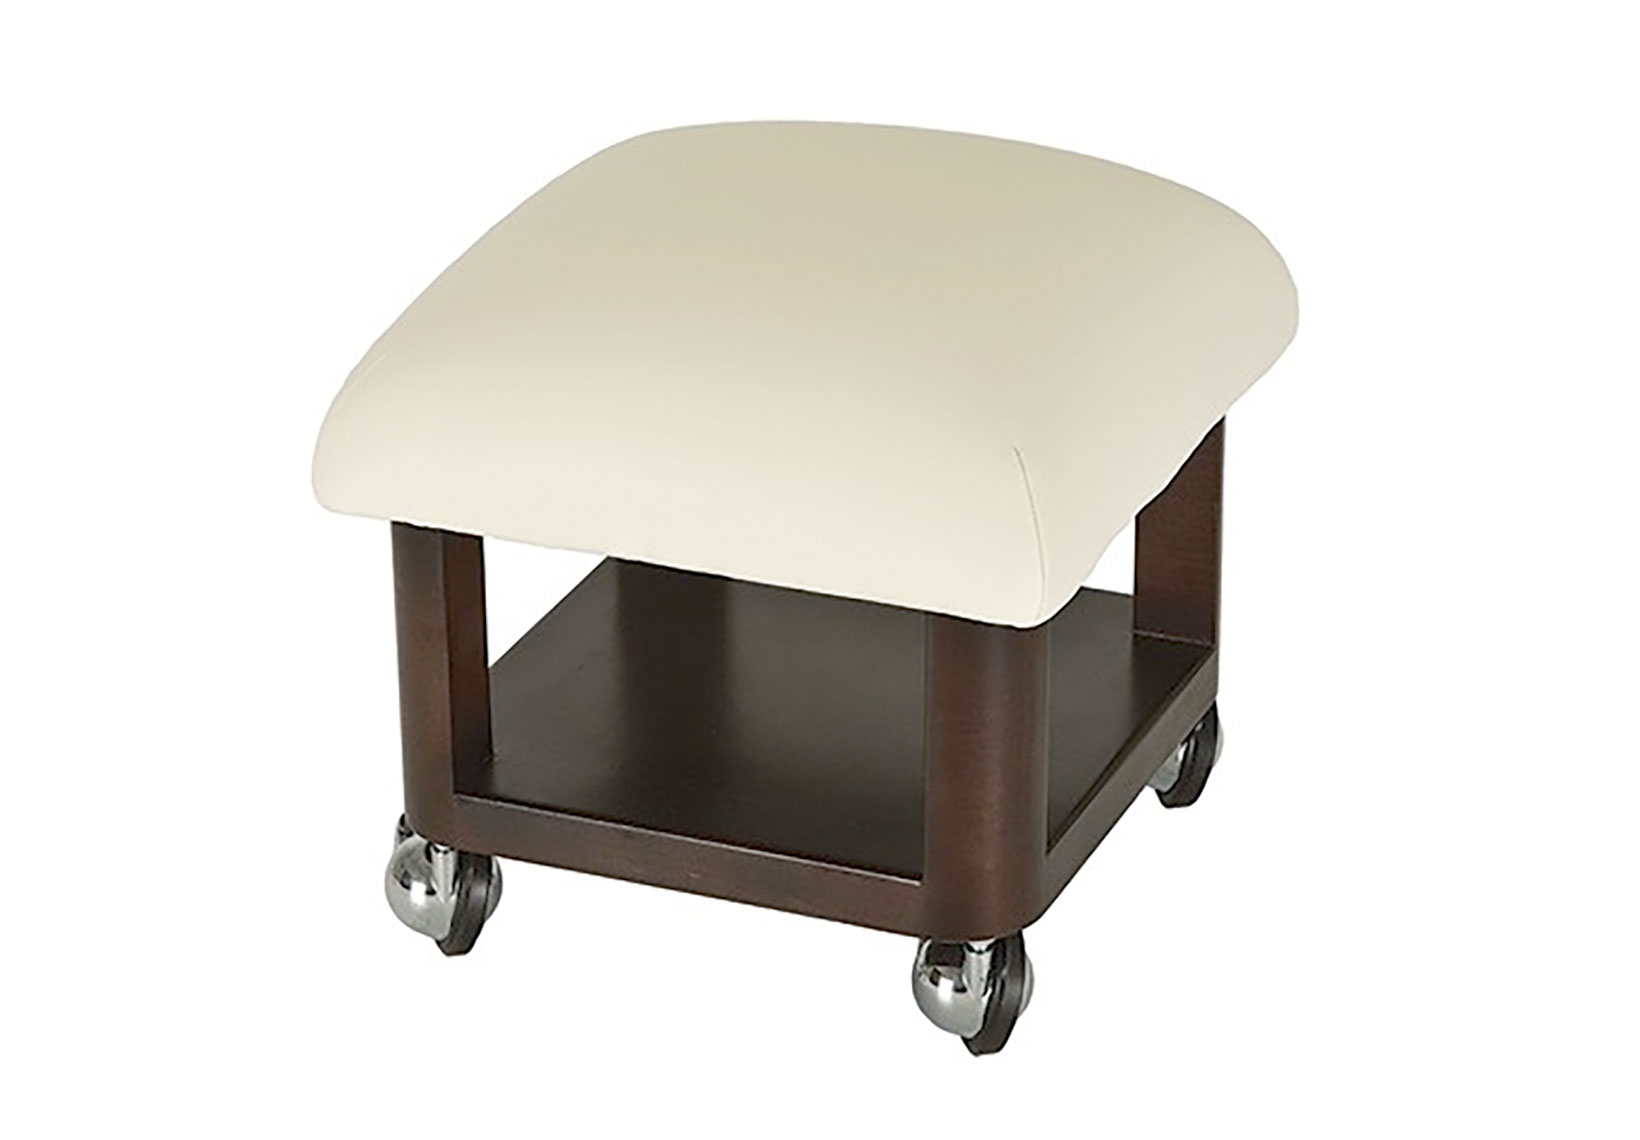 Astonishing Stools Spa Vision Global Leading Spa Equipment Supplier Gmtry Best Dining Table And Chair Ideas Images Gmtryco